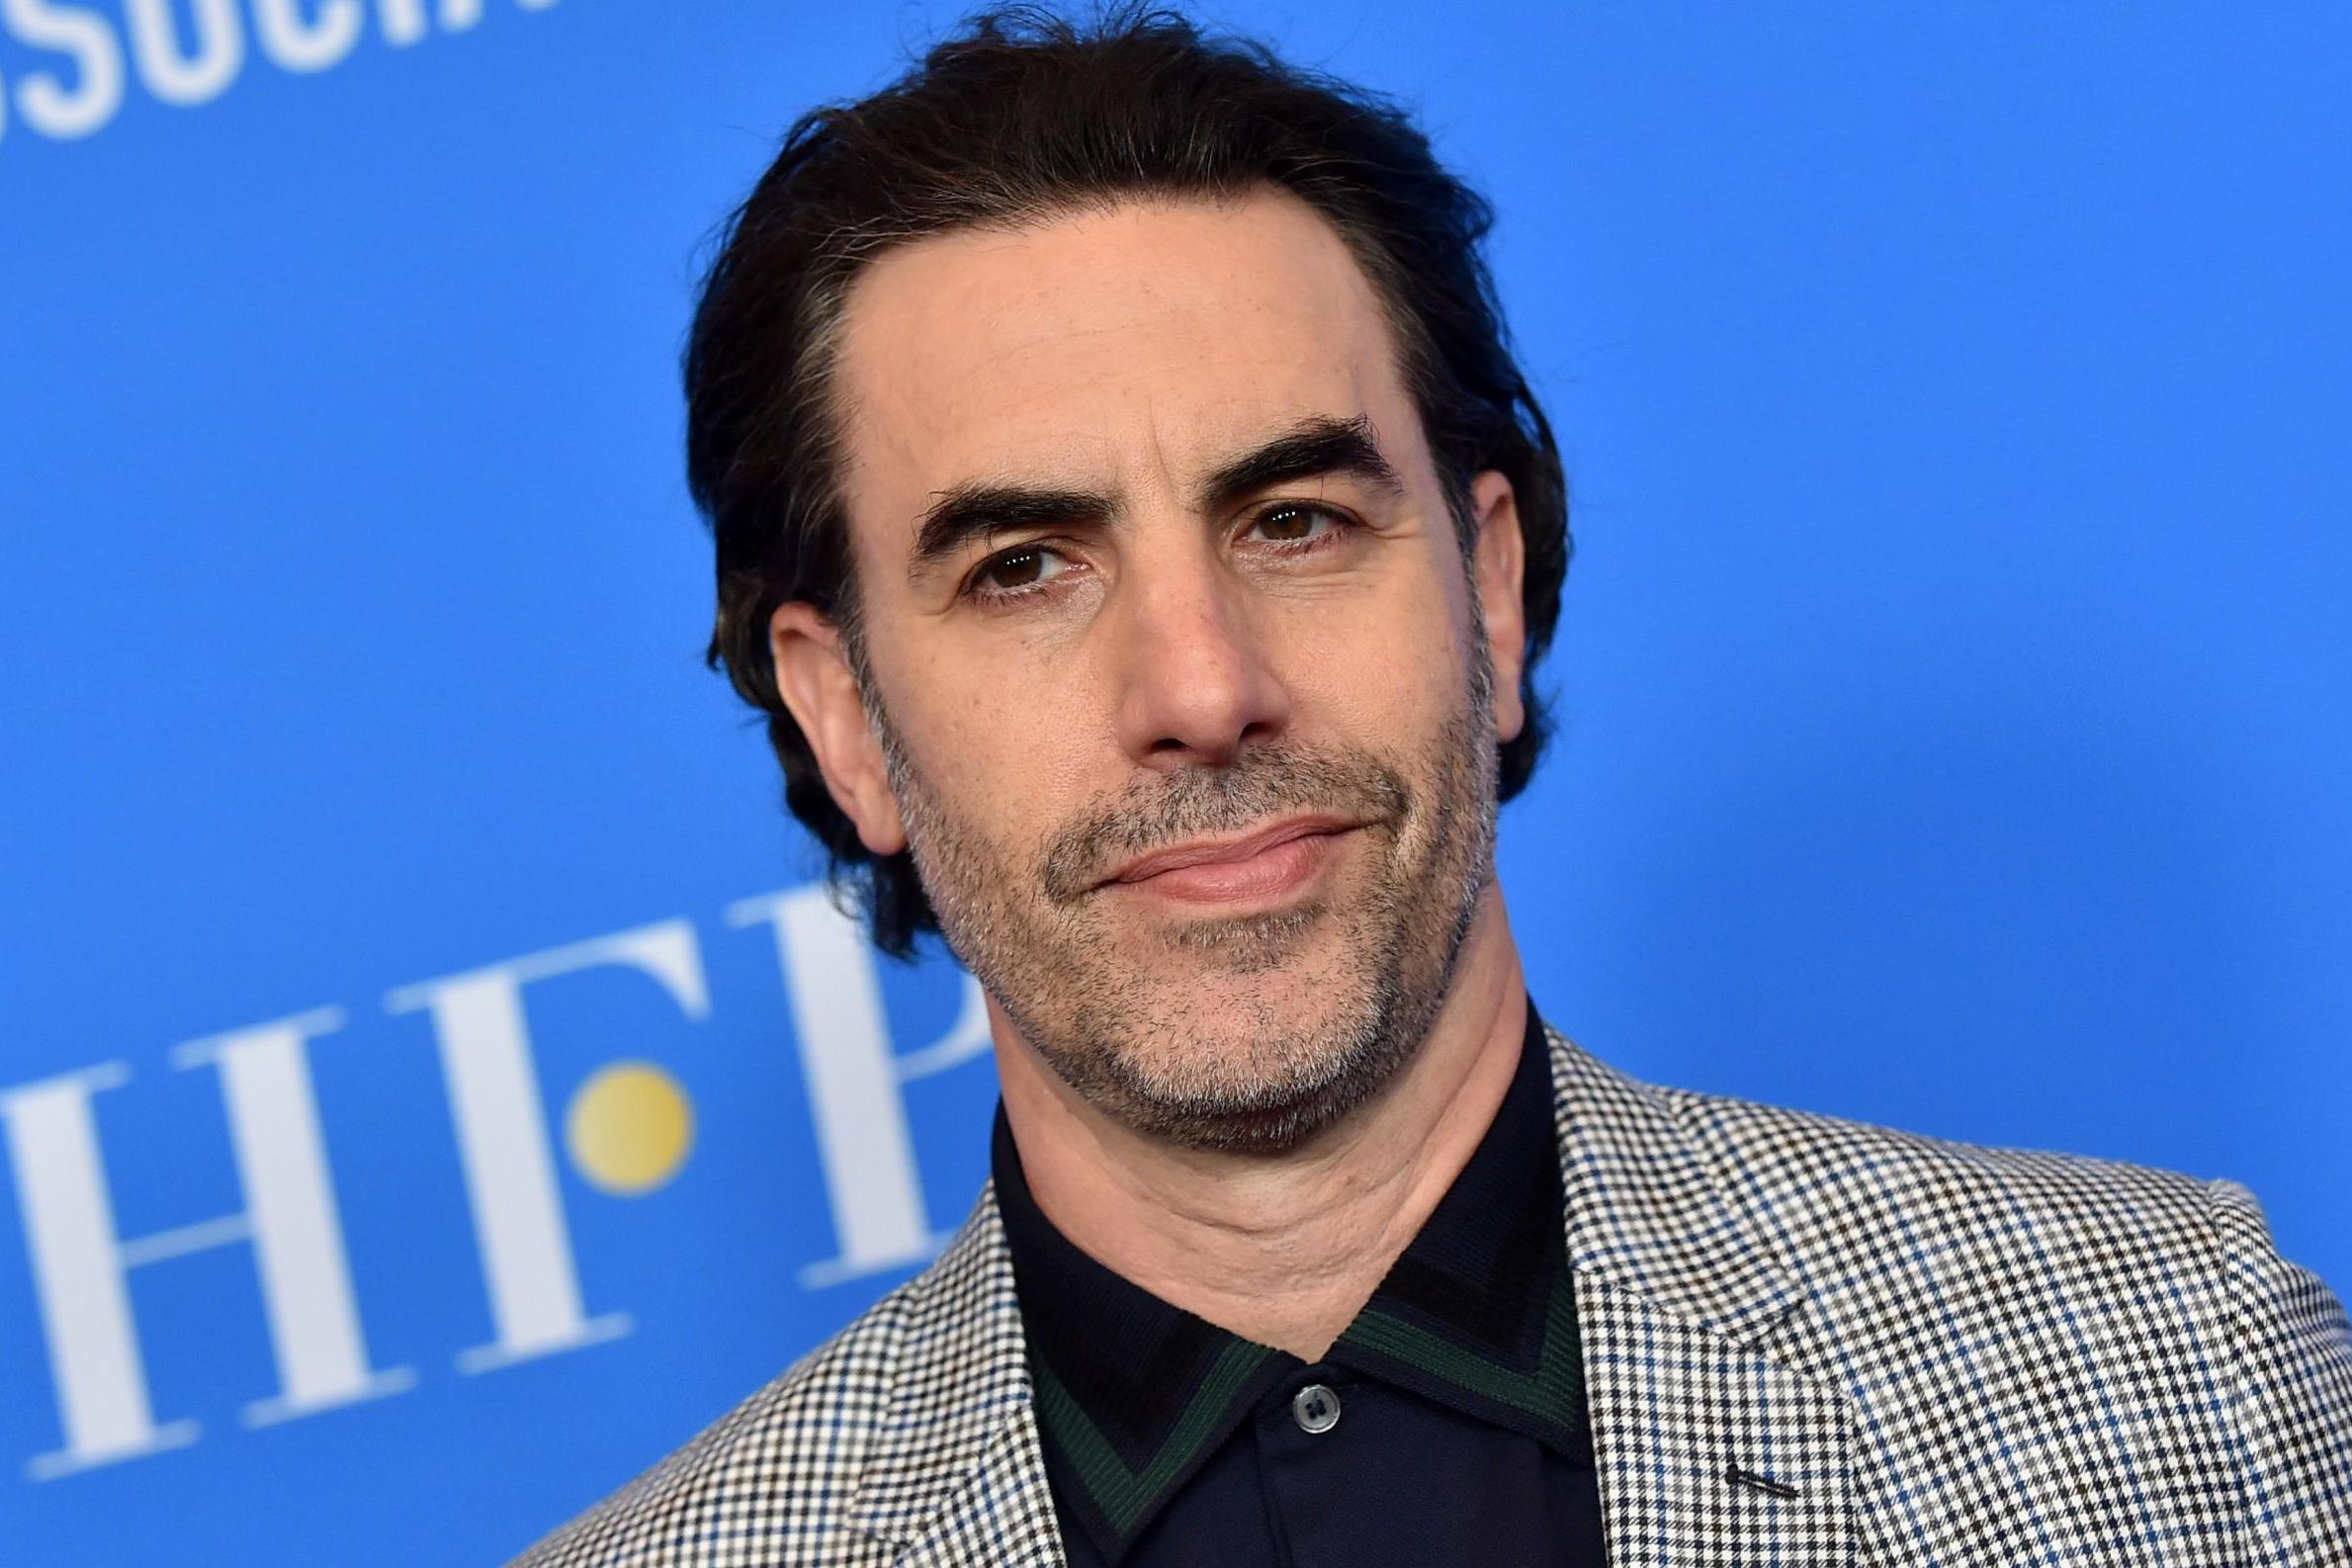 Sacha Baron Cohen calls out Larry Page and Sergey Brin: 'Stop Google and YouTube from spreading white supremacy'